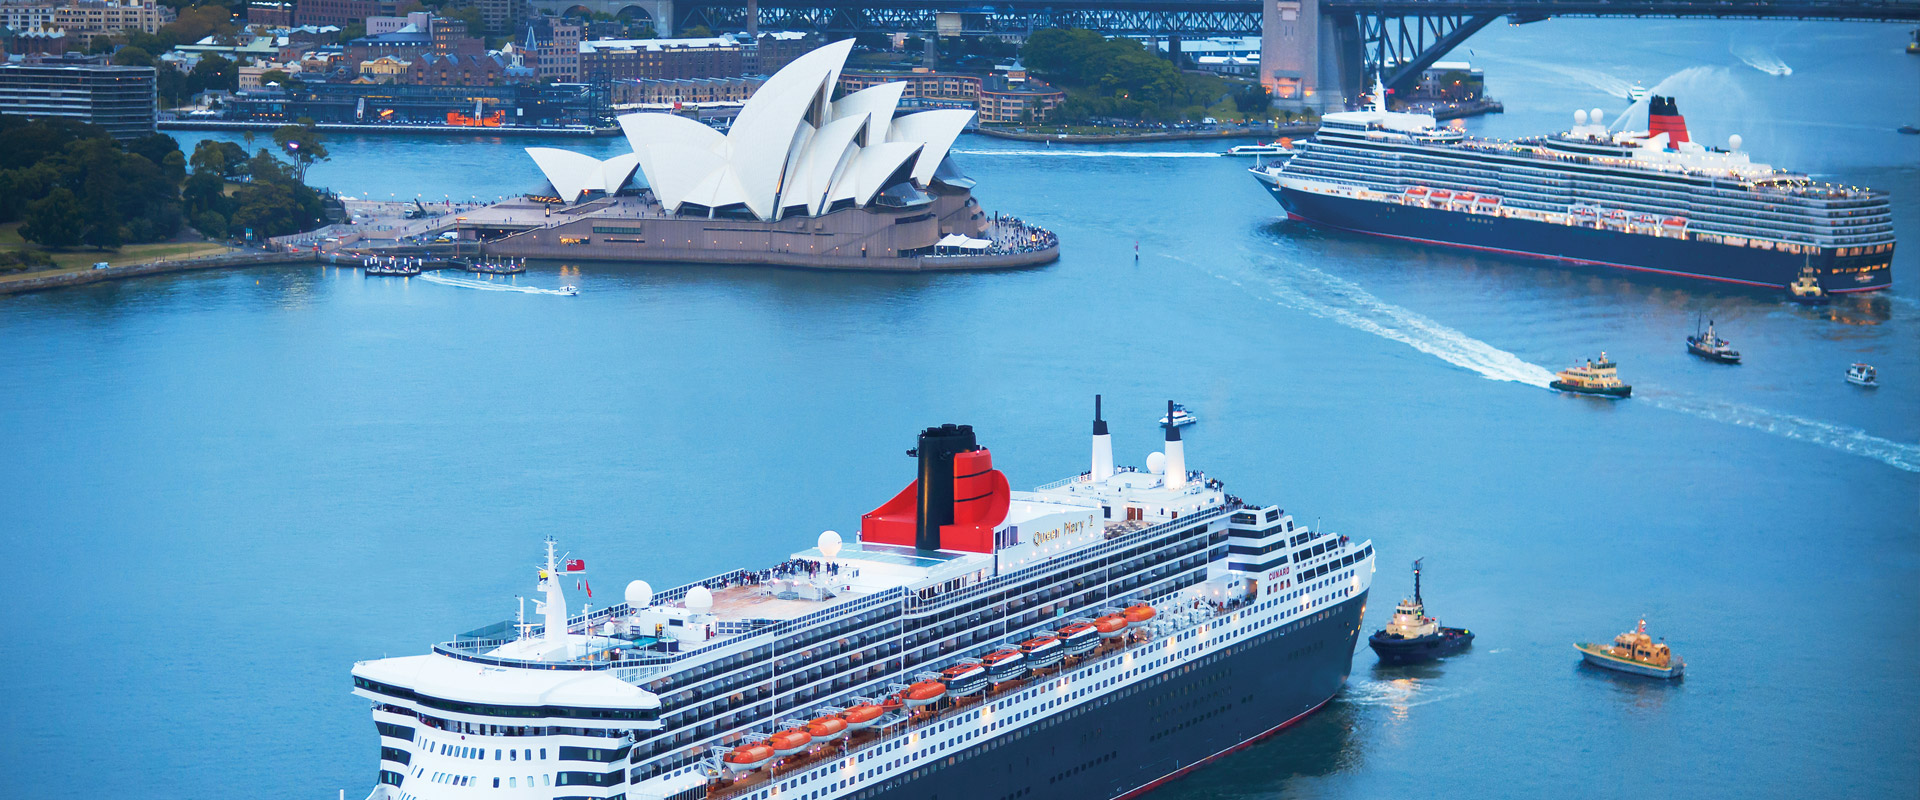 Cunard Presents Speakers Across the Spectrum